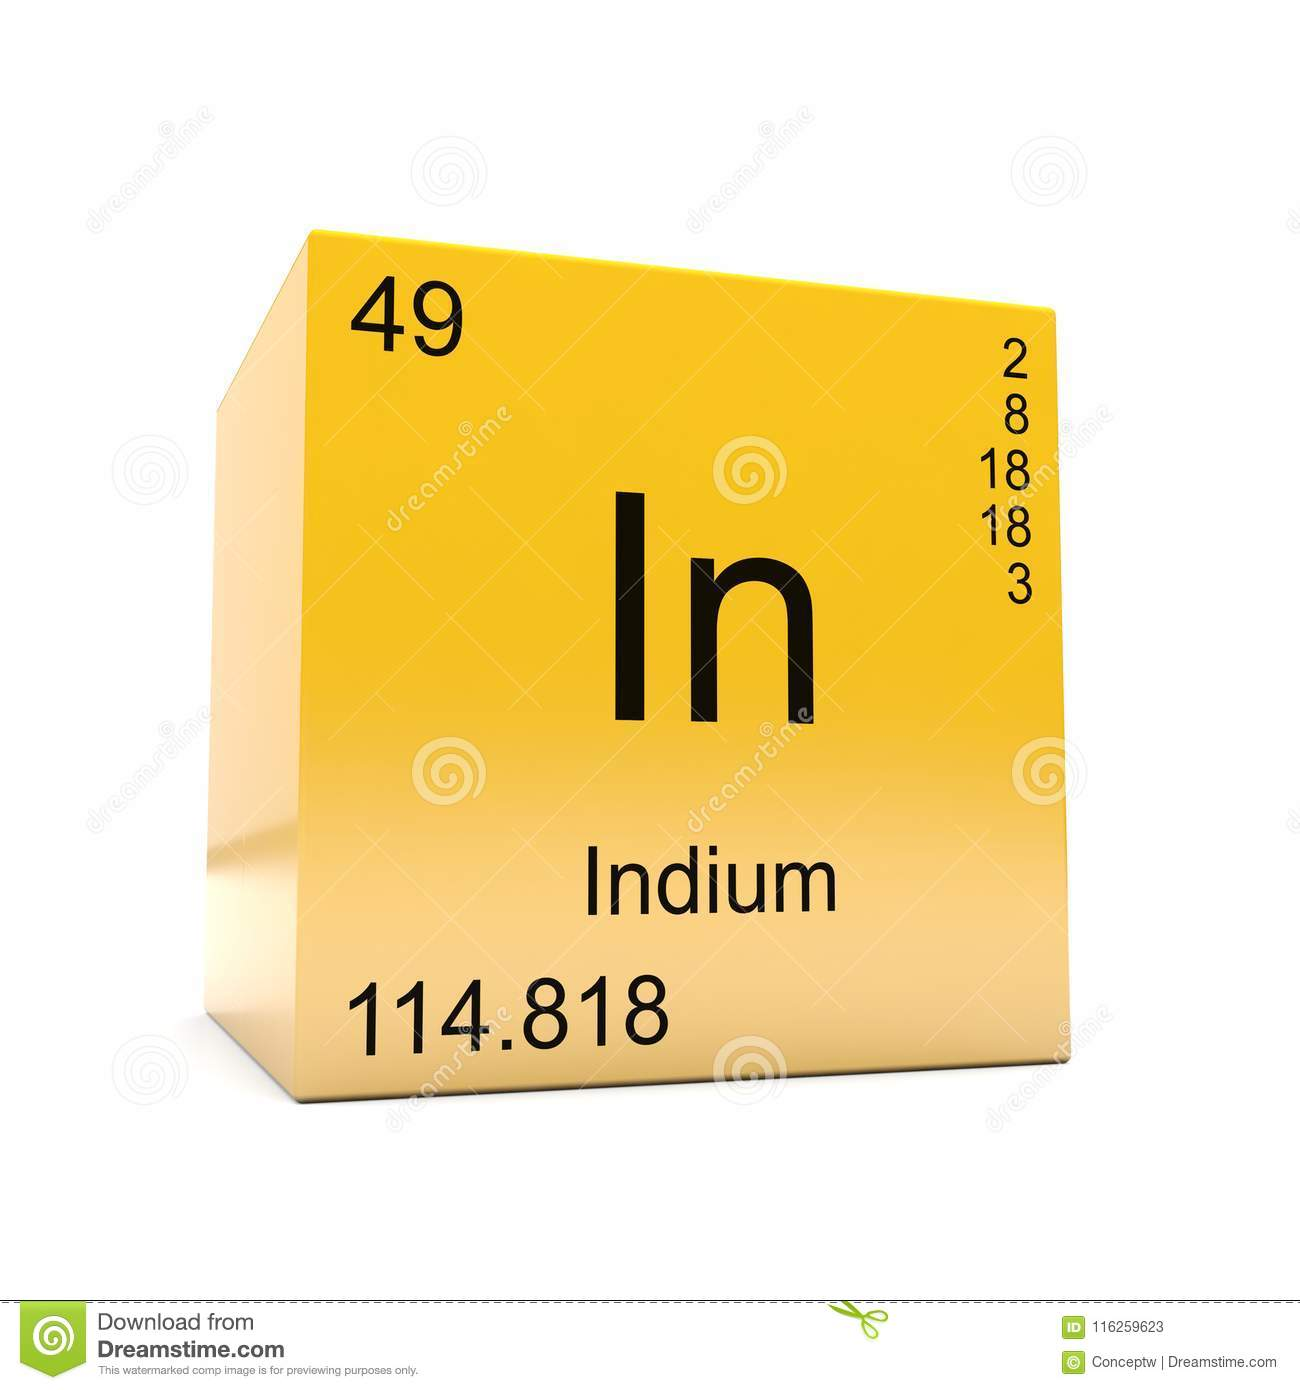 Indium Chemical Element Symbol From Periodic Table Stock